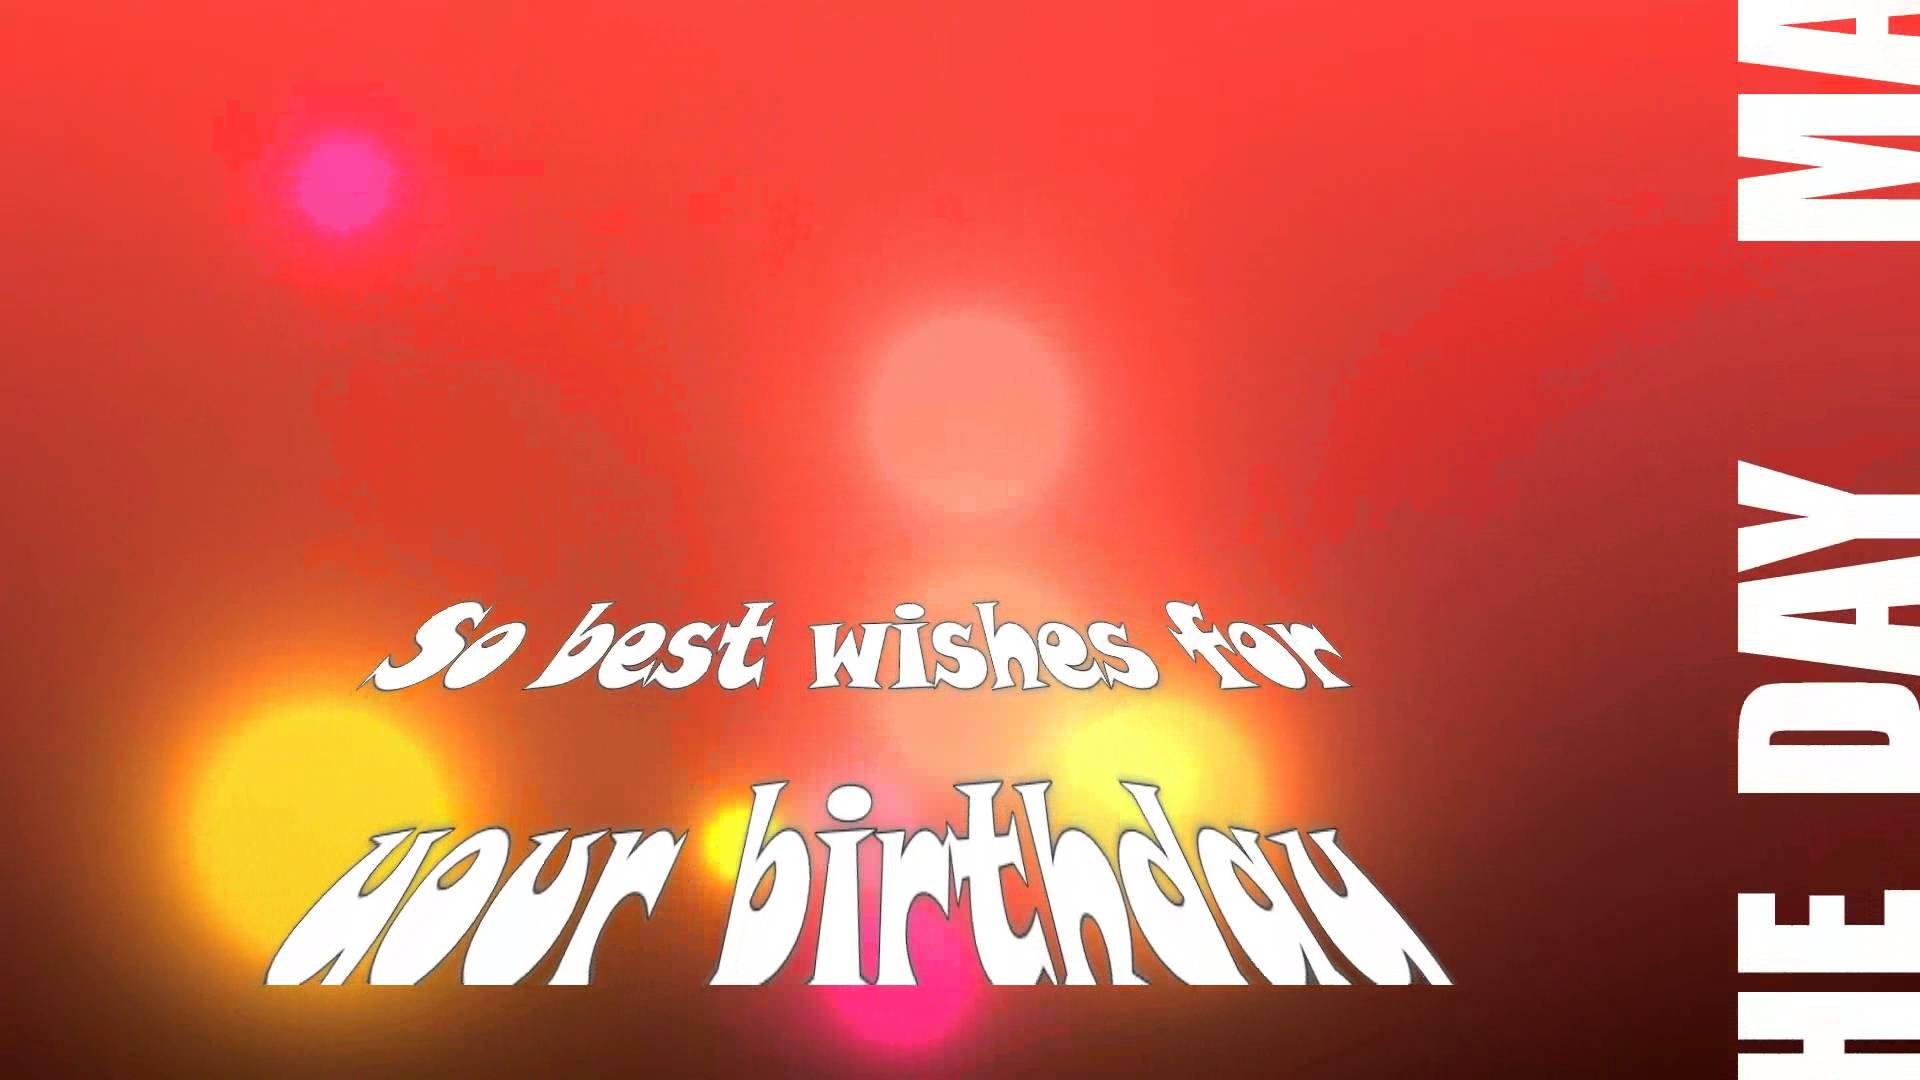 birthday greetings images free download ; Birthday-Wishes-Greeting-Cards-Free-Download-to-inspire-you-how-to-create-the-birthday-Card-with-the-best-way-1